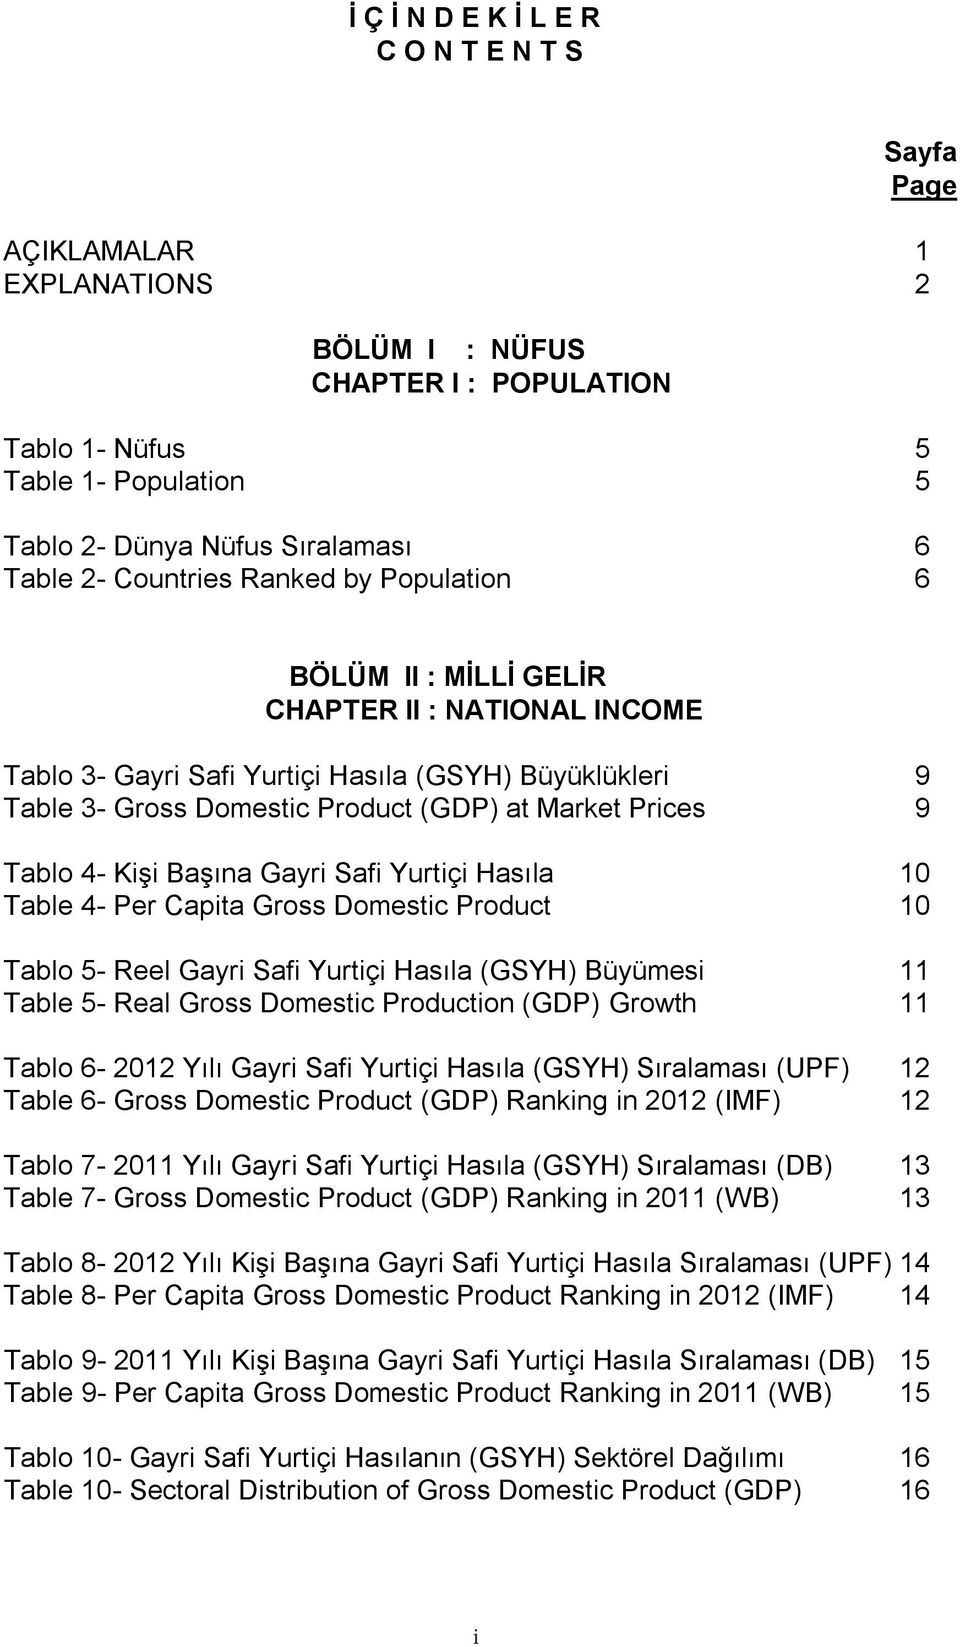 Tablo 4- Kişi Başına Gayri Safi Yurtiçi Hasıla 10 Table 4- Per Capita Gross Domestic Product 10 Tablo 5- Reel Gayri Safi Yurtiçi Hasıla (GSYH) Büyümesi 11 Table 5- Real Gross Domestic Production